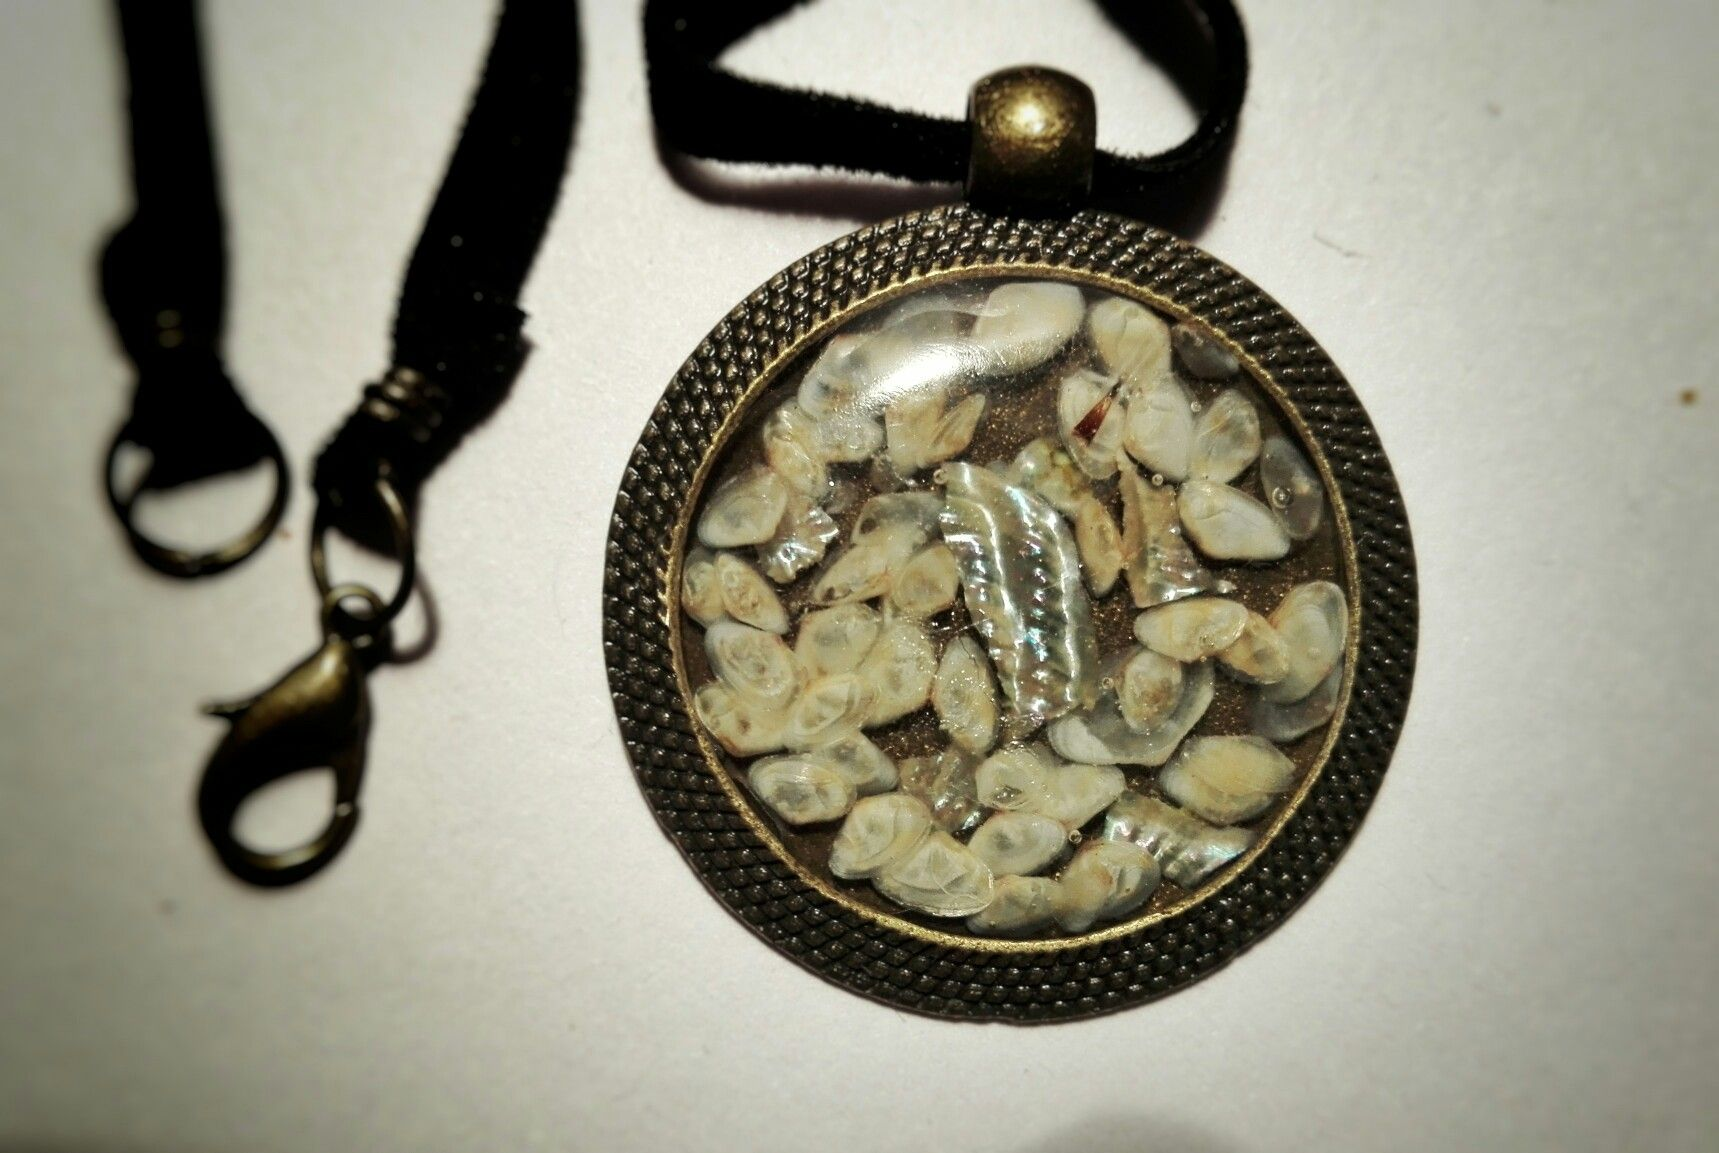 Cammeo made in resin with shells from calabria and a piece of mother of pearl Handmade with love by artmachi